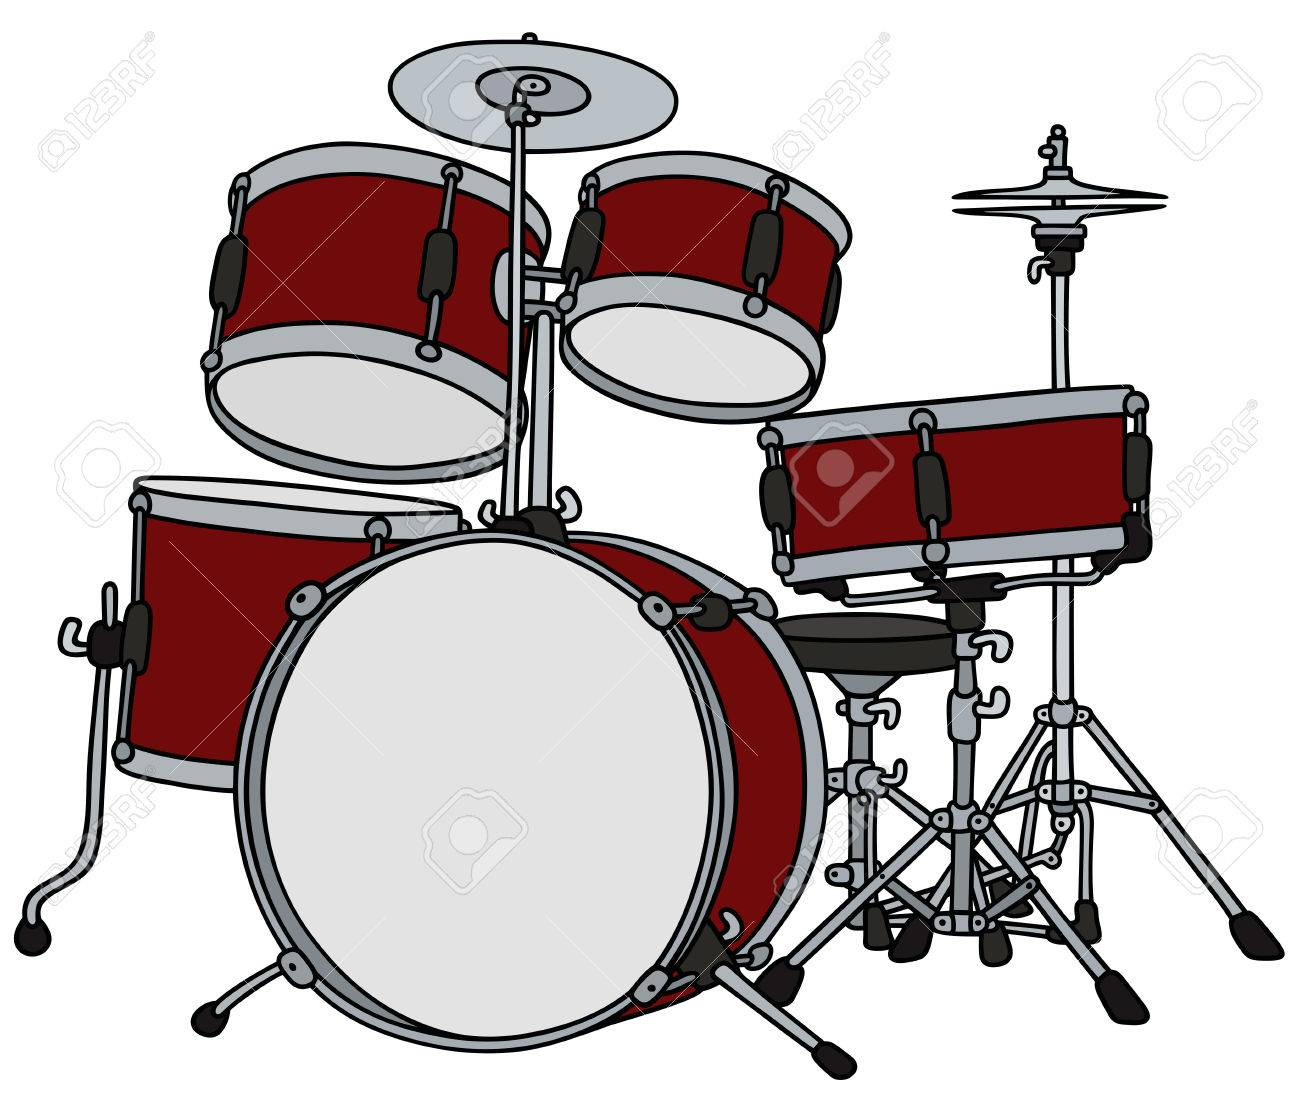 Bass Drum Drawing at GetDrawings.com | Free for personal use Bass ...